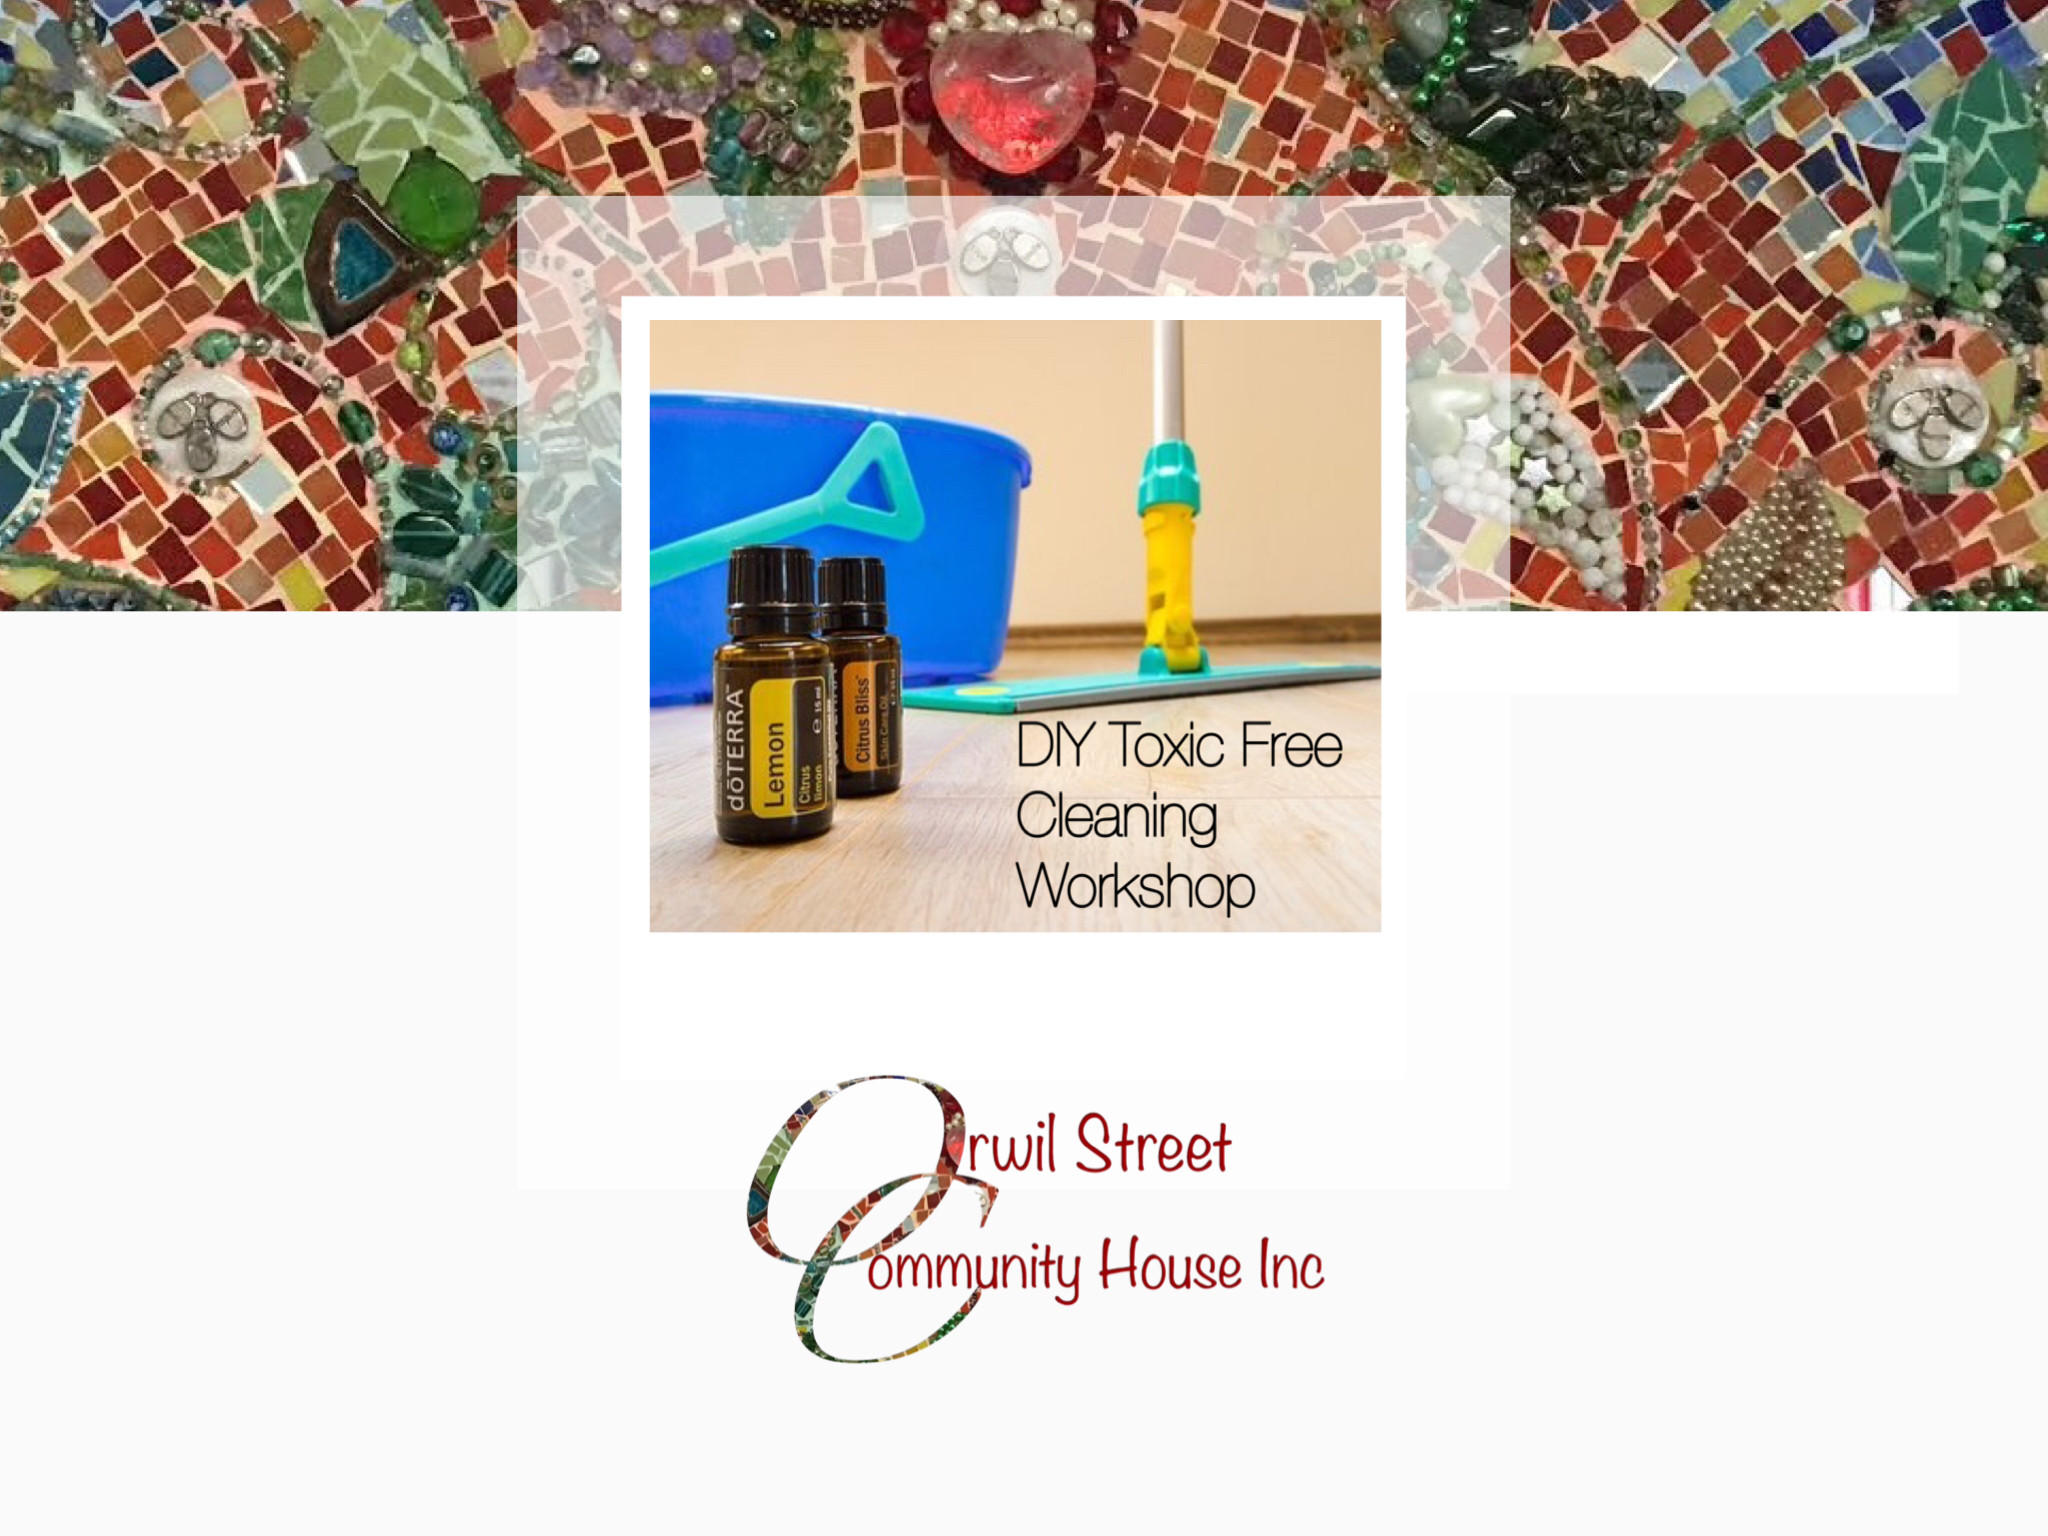 DYI toxic free Cleaning Workshop